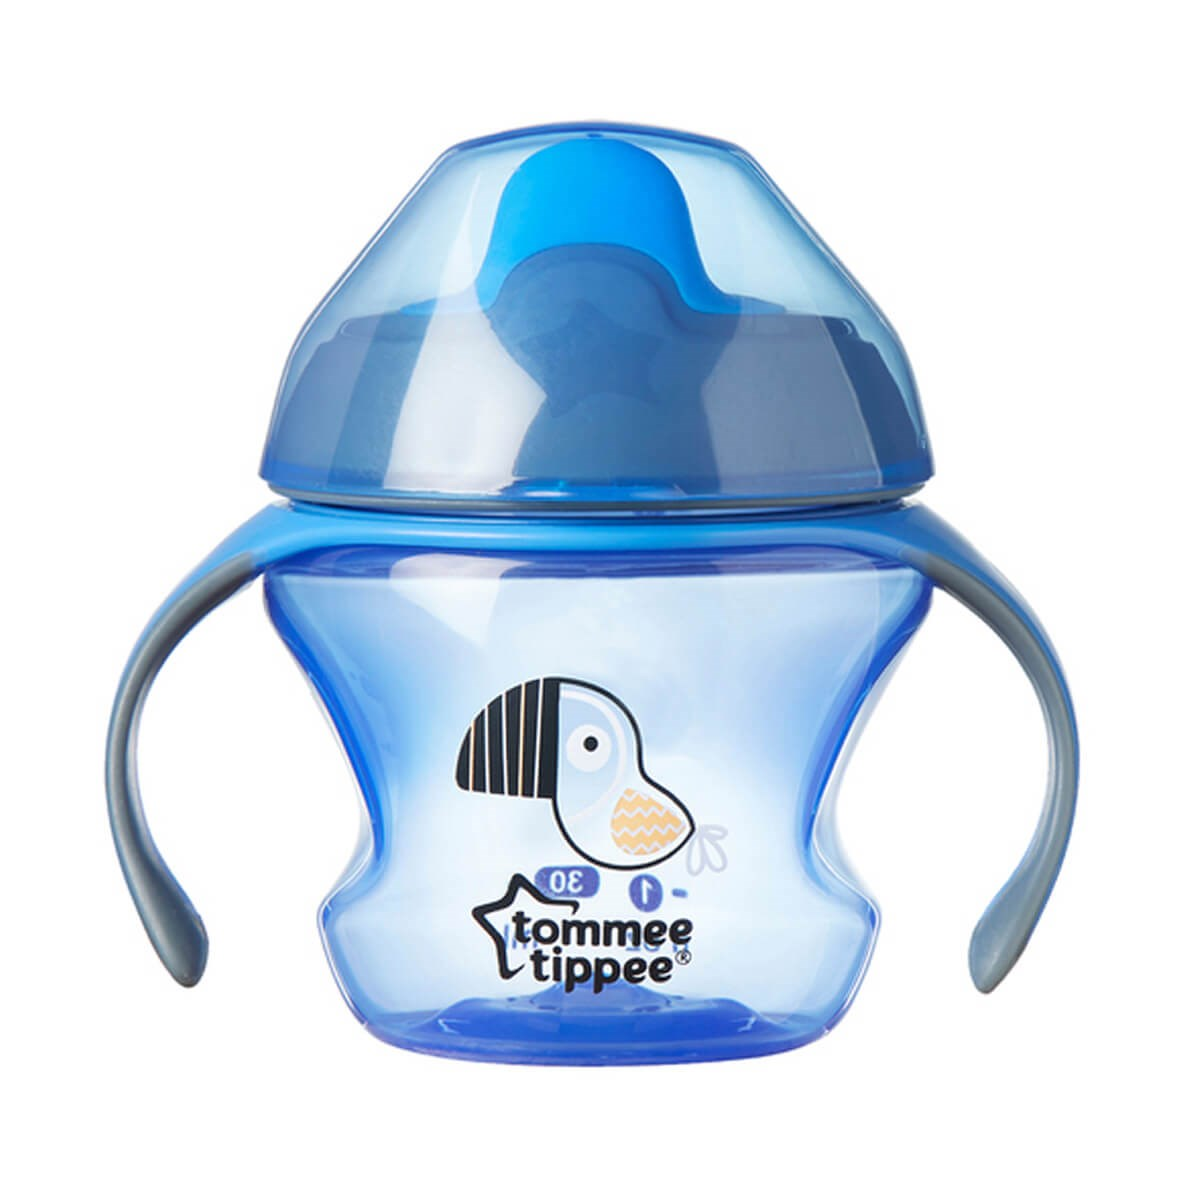 Tommee Tippee First Sippee Cup (4m+) 150ml